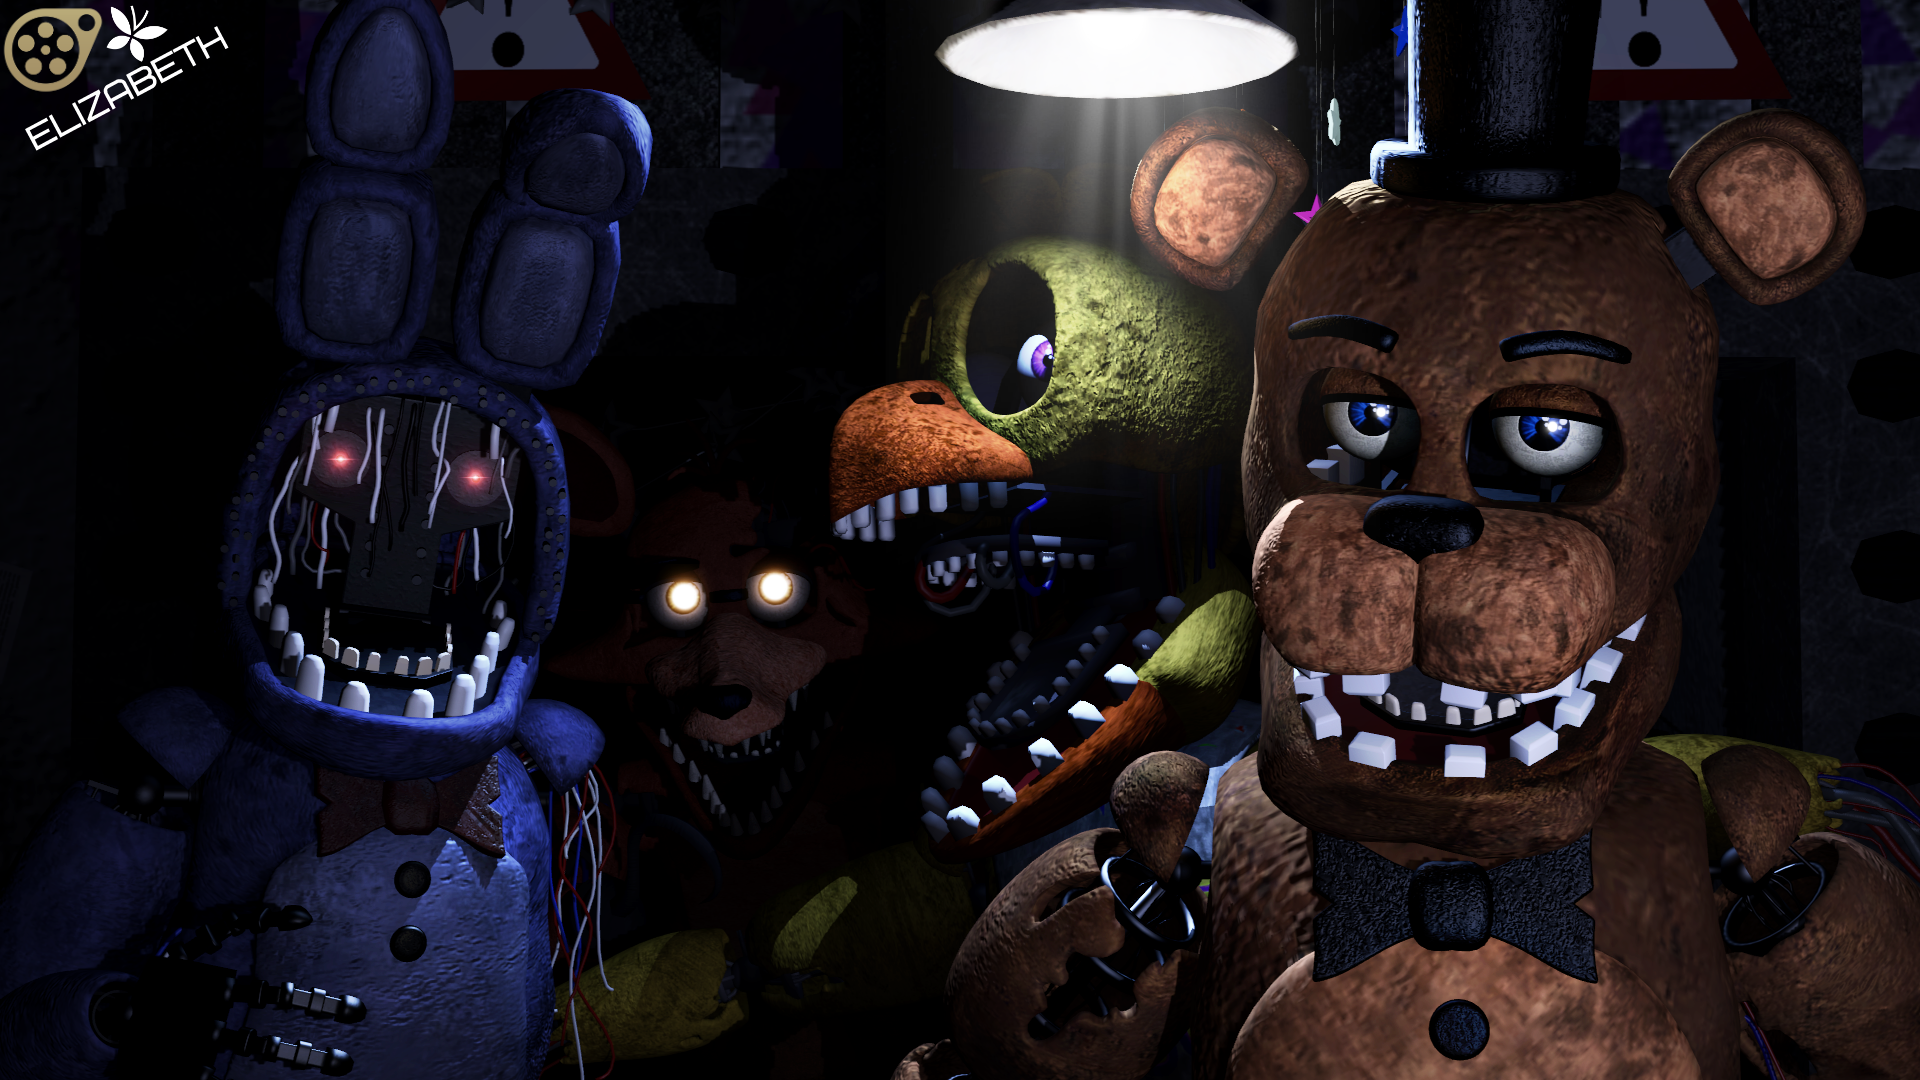 Pin by Angie777 on FNAF! | Fnaf, Five nights at freddys